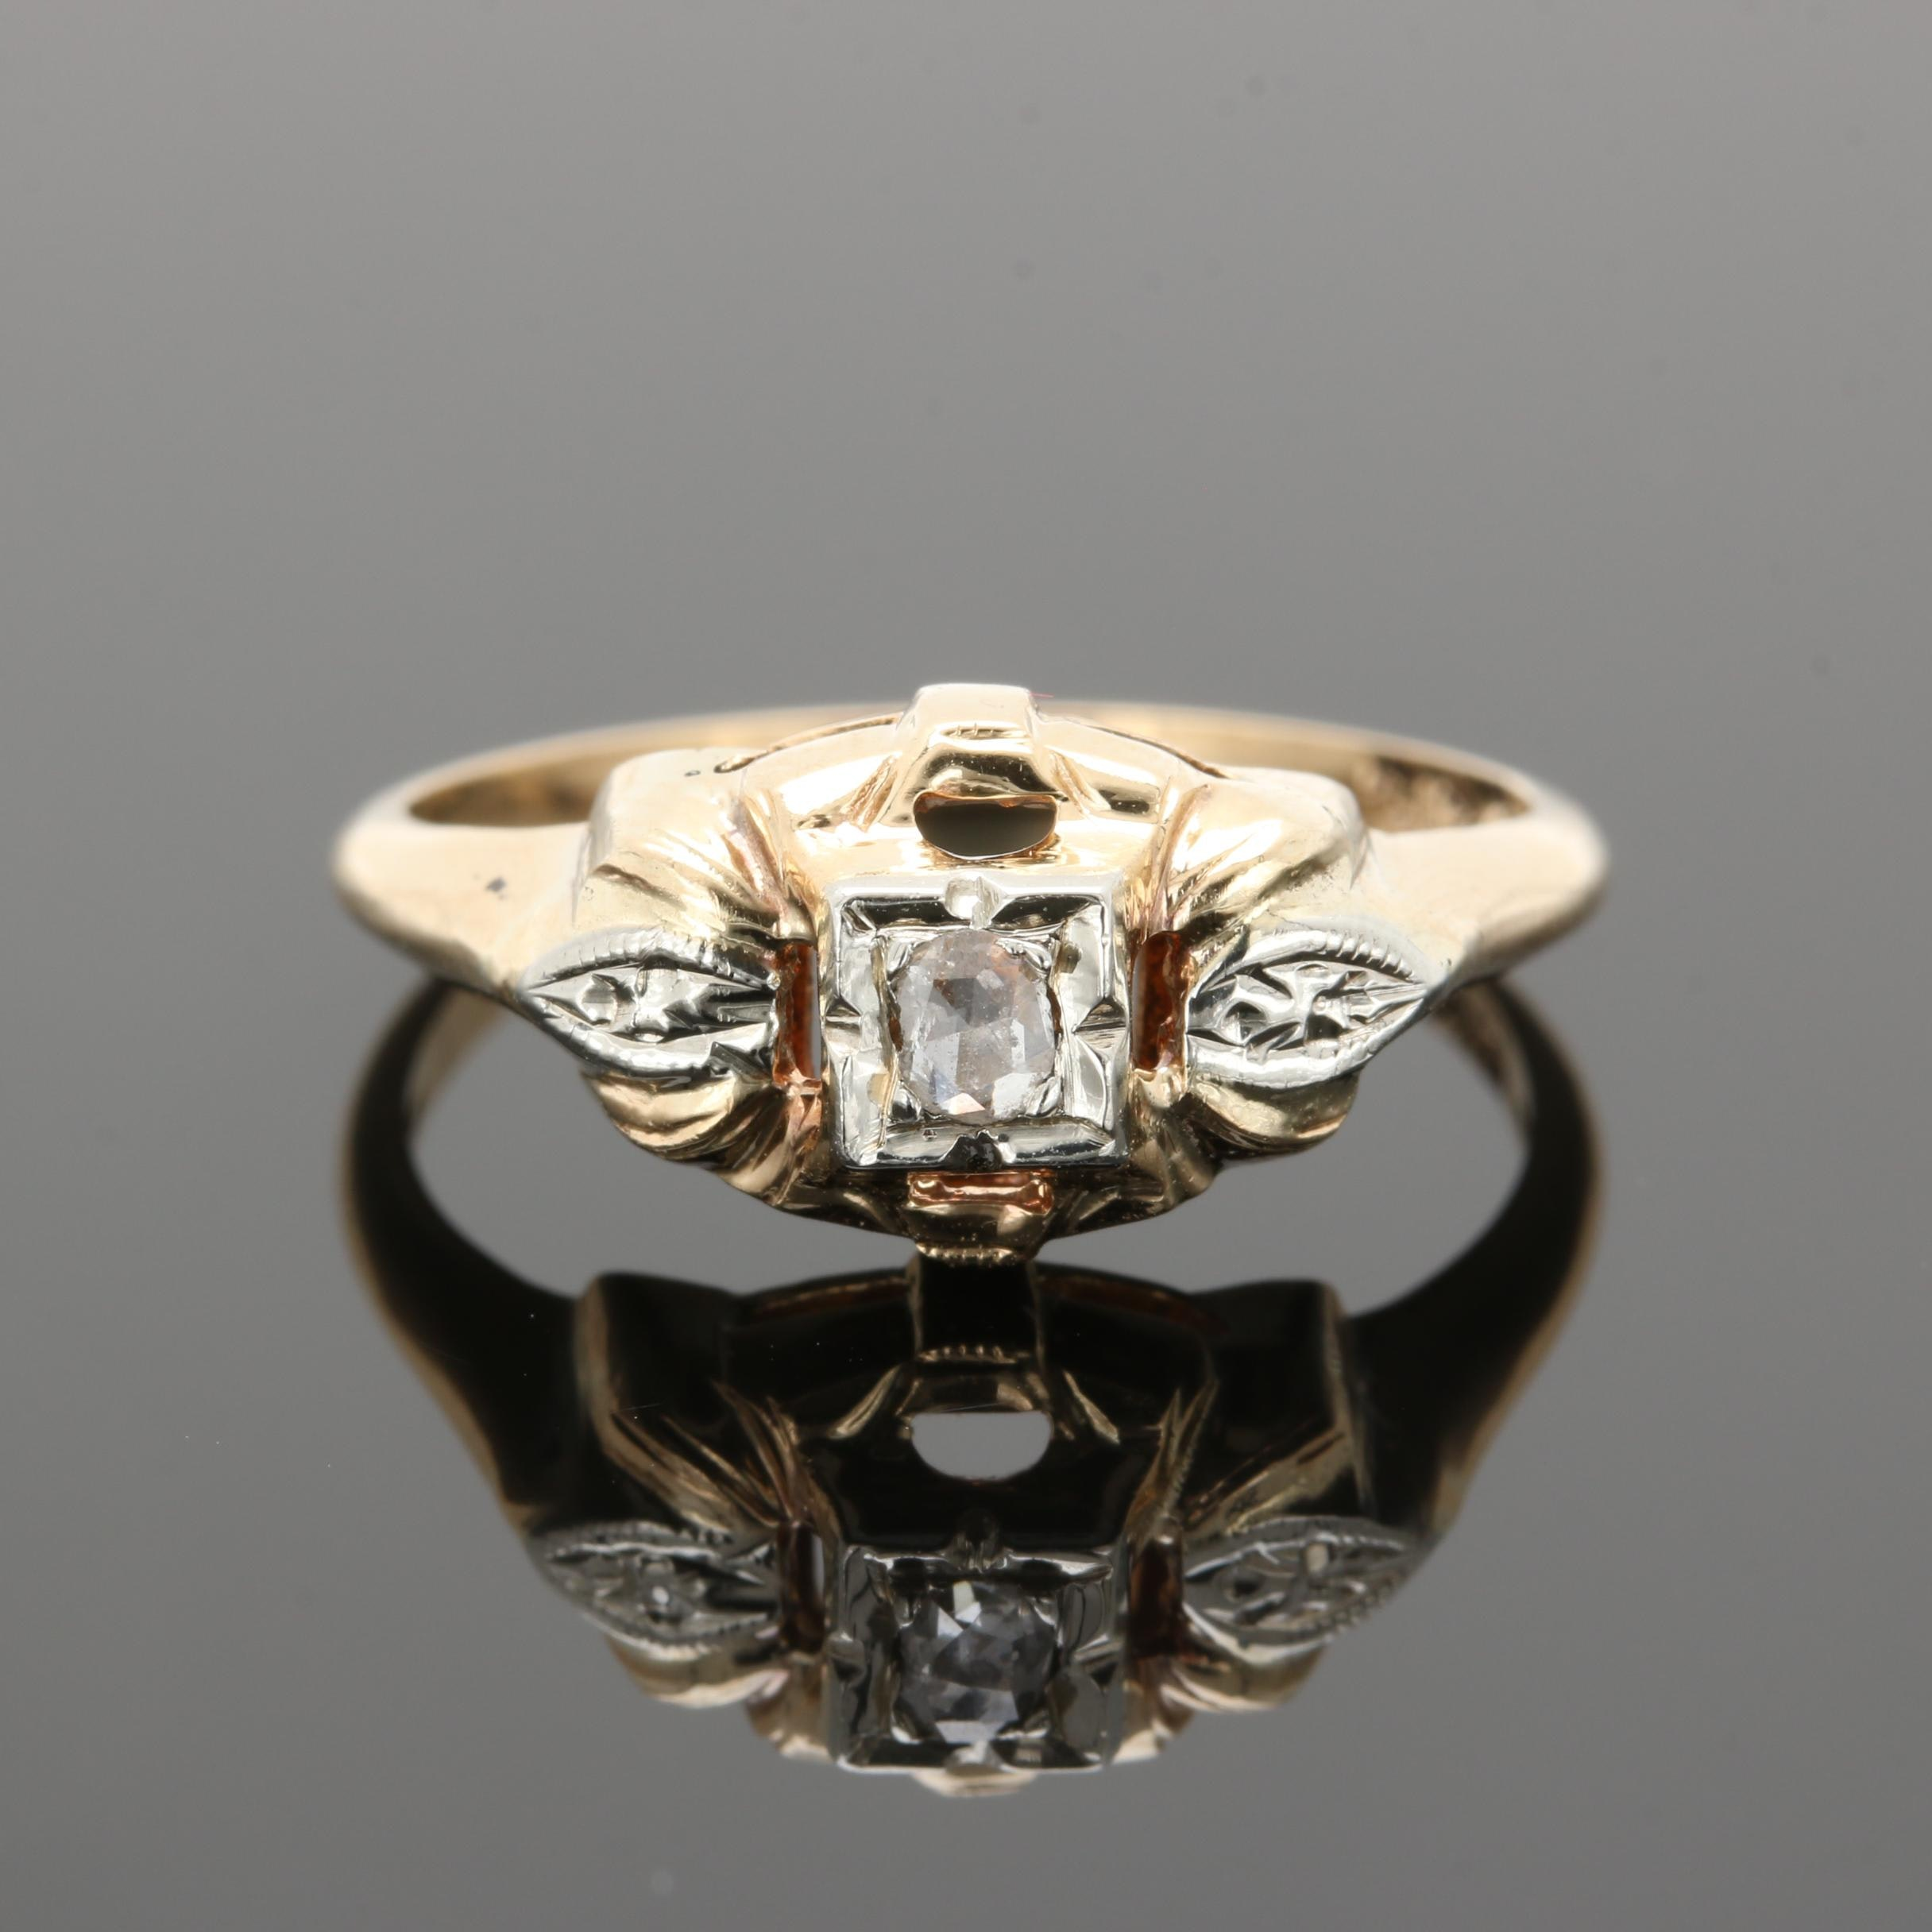 Vintage 14K Yellow Gold Diamond Ring with White Gold Accents